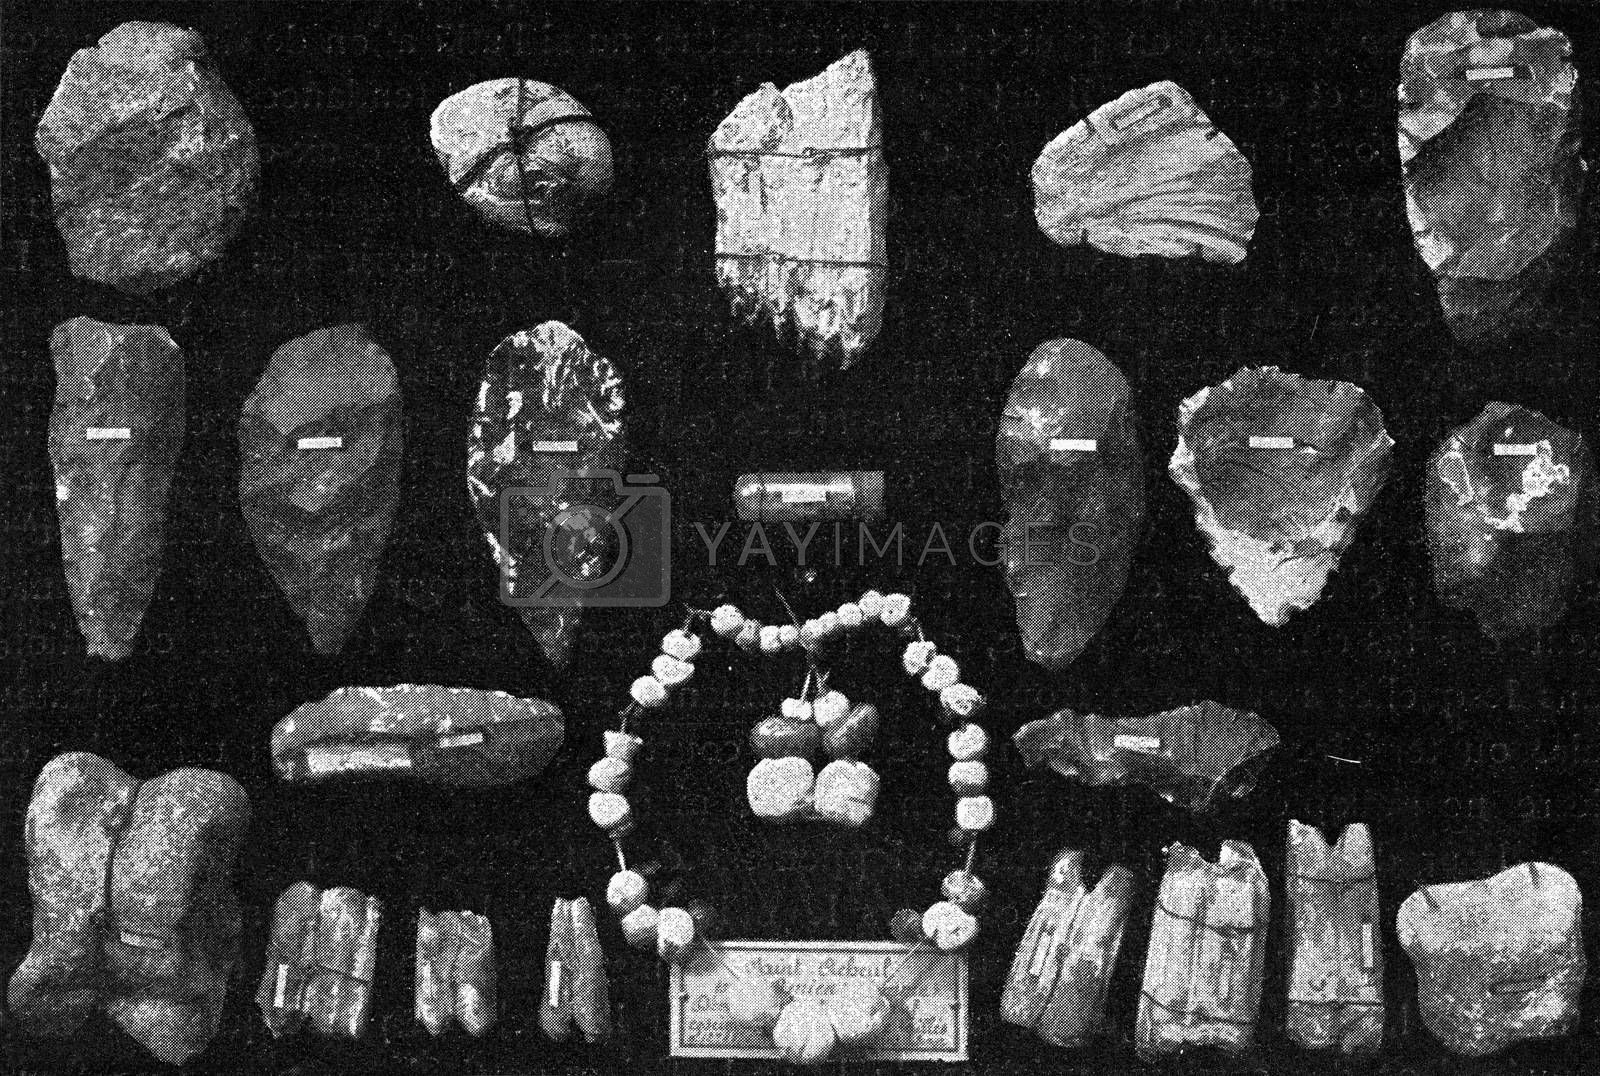 Objects of art in flint and bone ornaments from the diluvial deposits of the Somme Valley, vintage engraved illustration. From the Universe and Humanity, 1910.